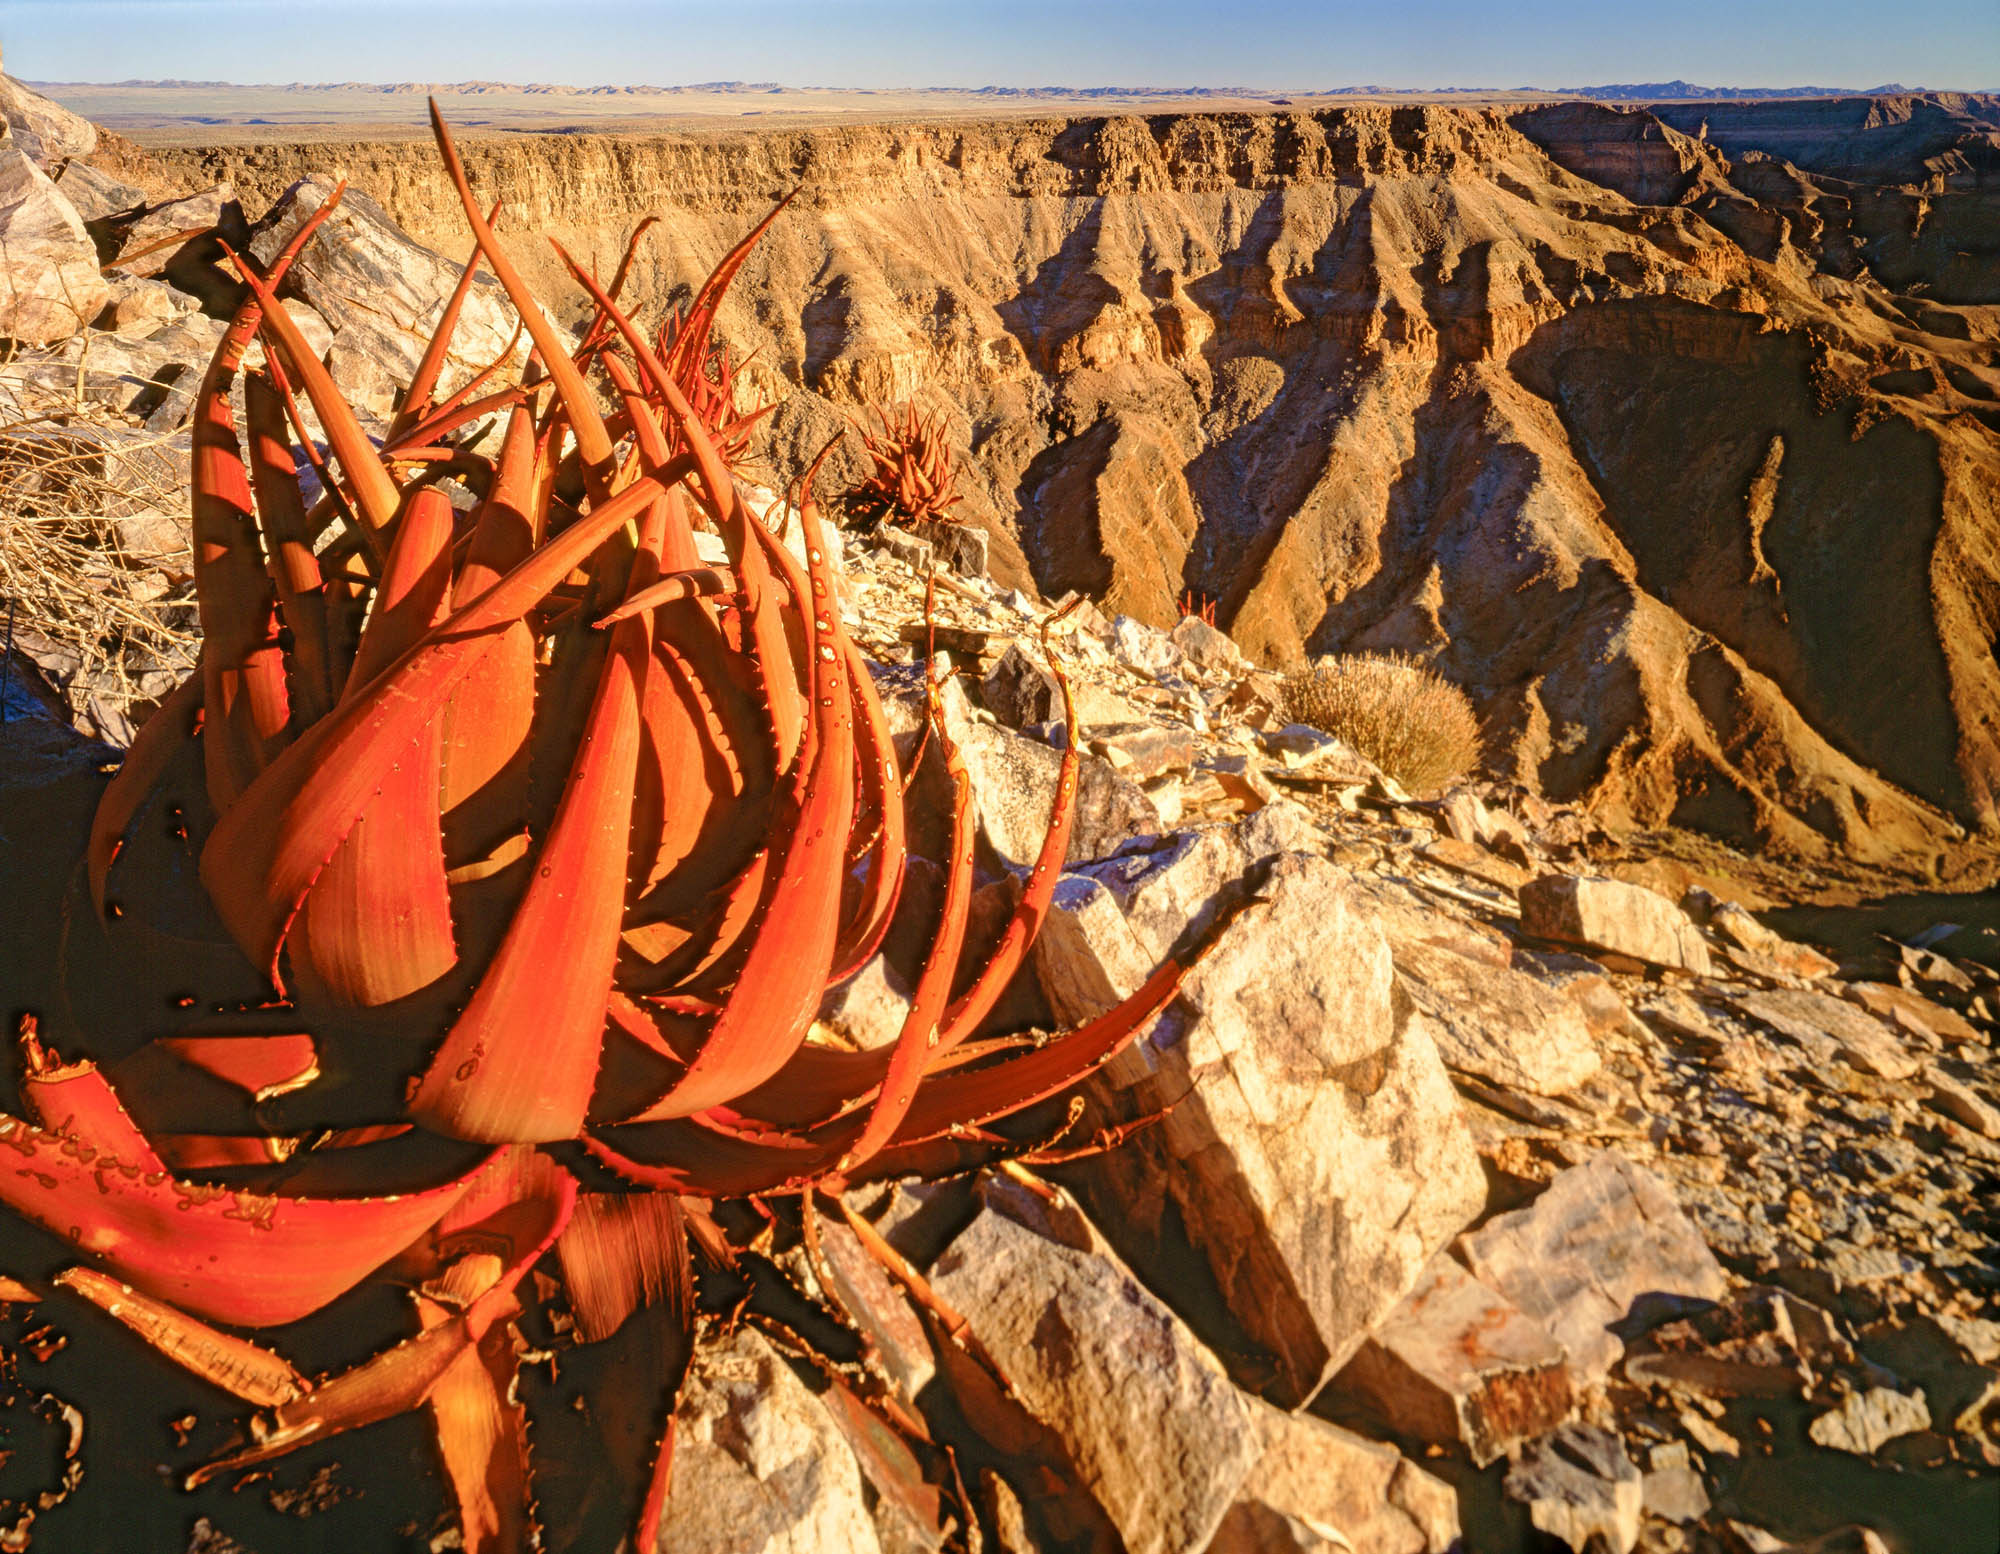 Aloe Plant, Fish River Canyon National Park, Namibia, Africa, photographed by Tom Till